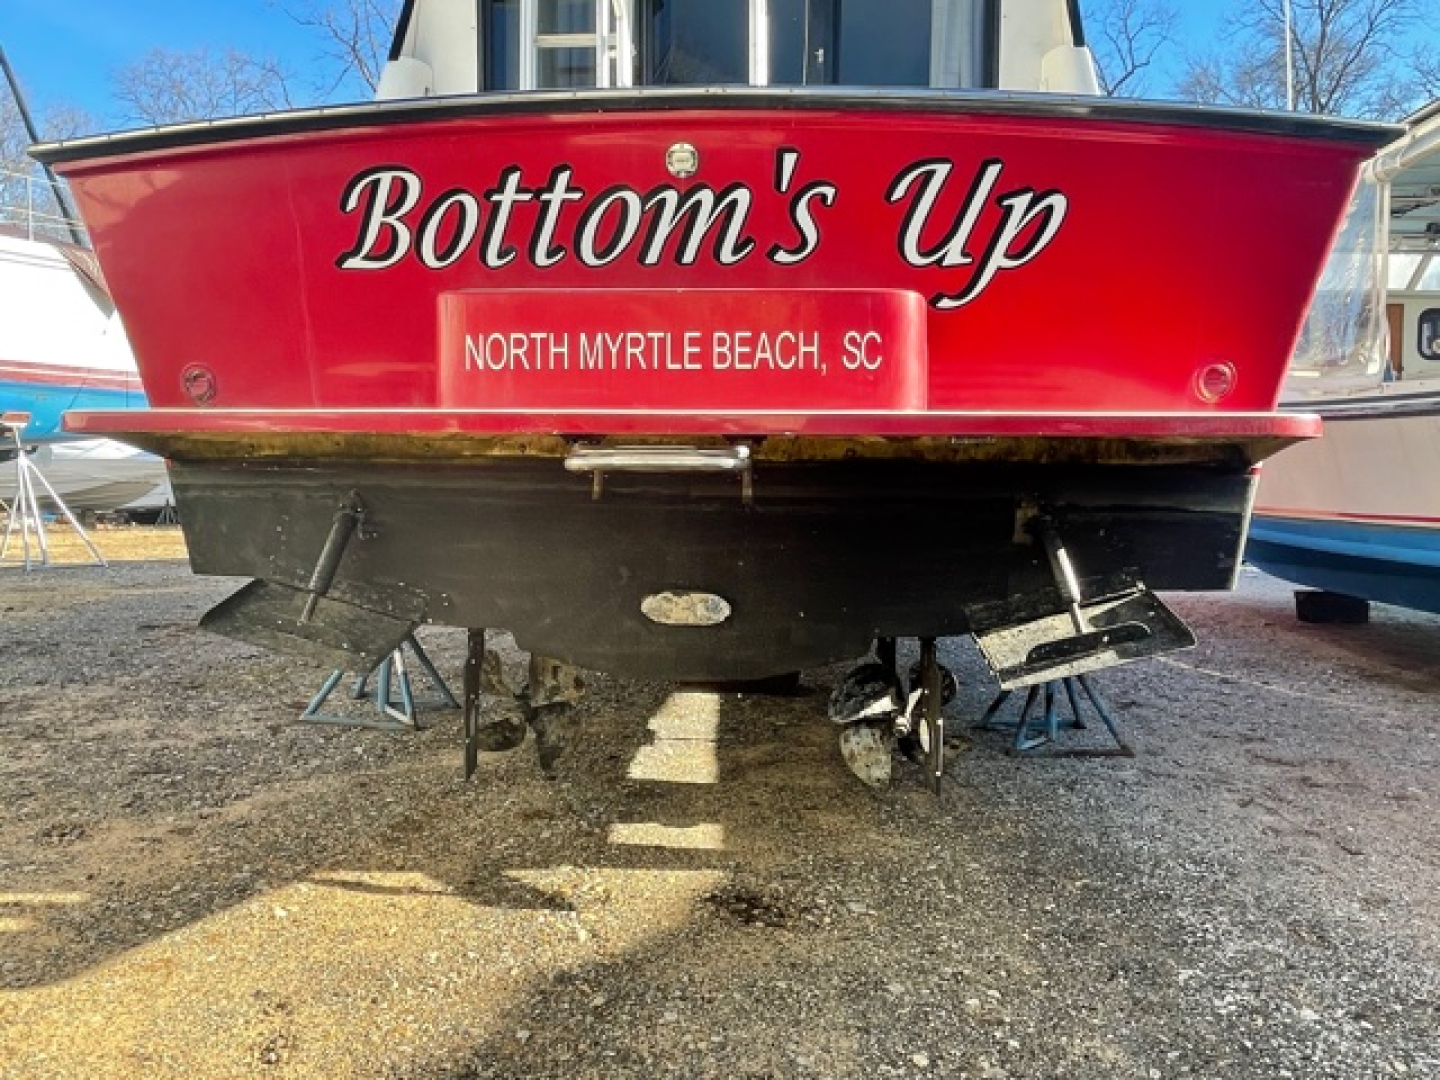 Picure of Bottom's Up